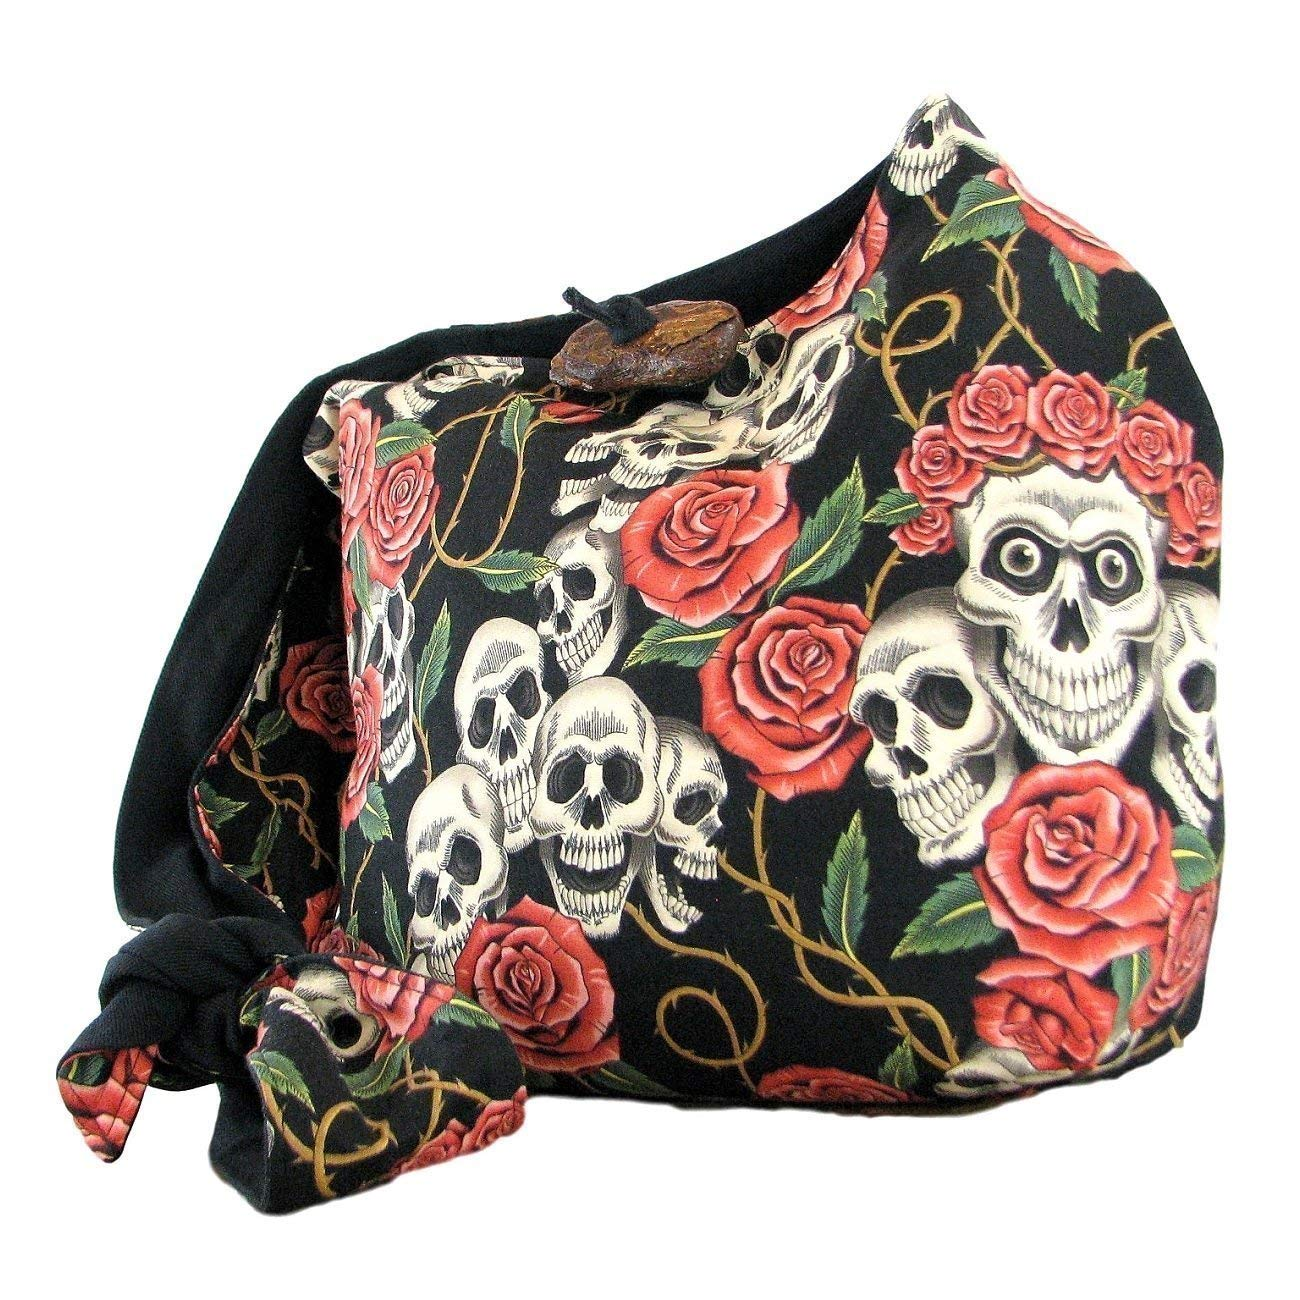 a35fc5b14c Get Quotations · Skull and Roses Crossbody Skull Purse for Women